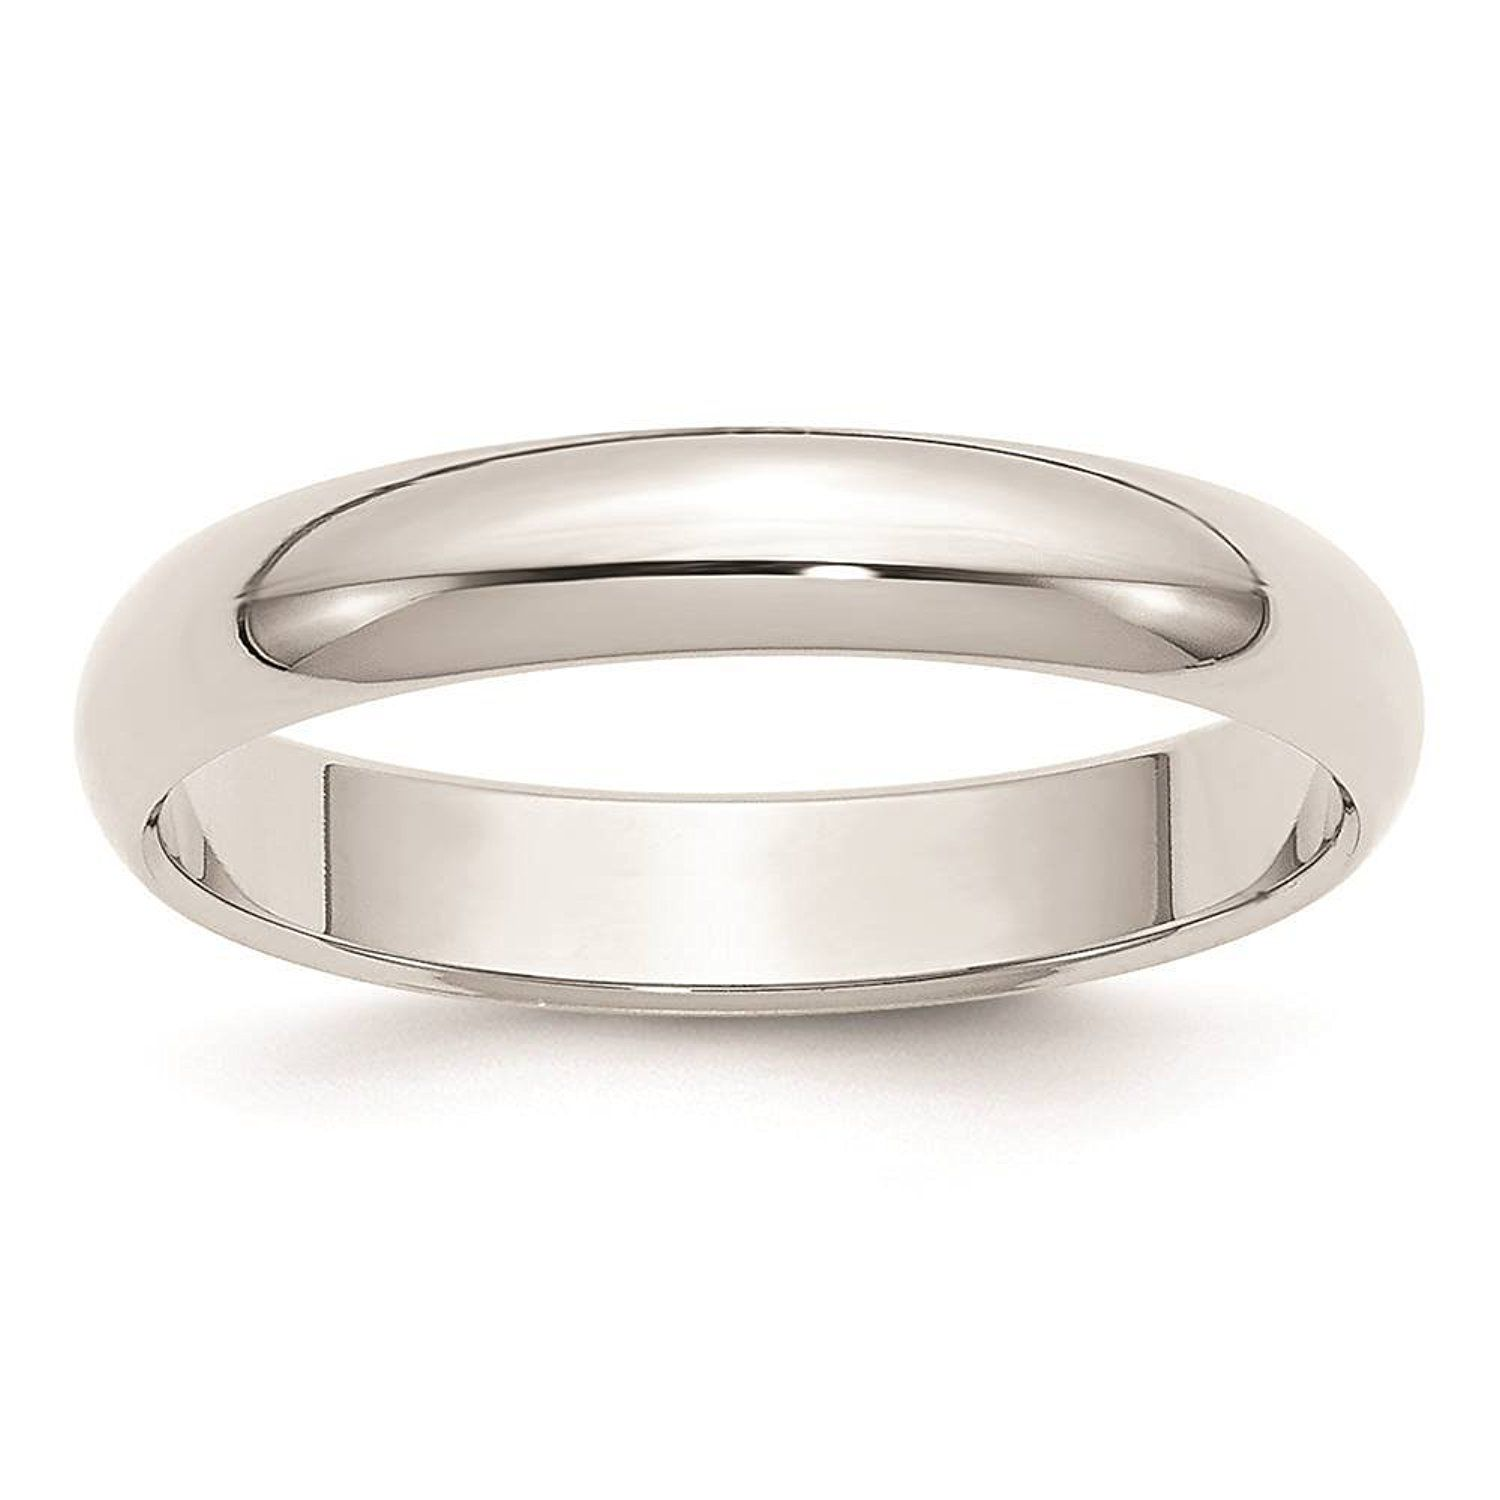 925 Sterling Silver 3mm Half Round Polished Milgrain Wedding Ring Band Available in Sizes 4-13 Full /& Half Sizes